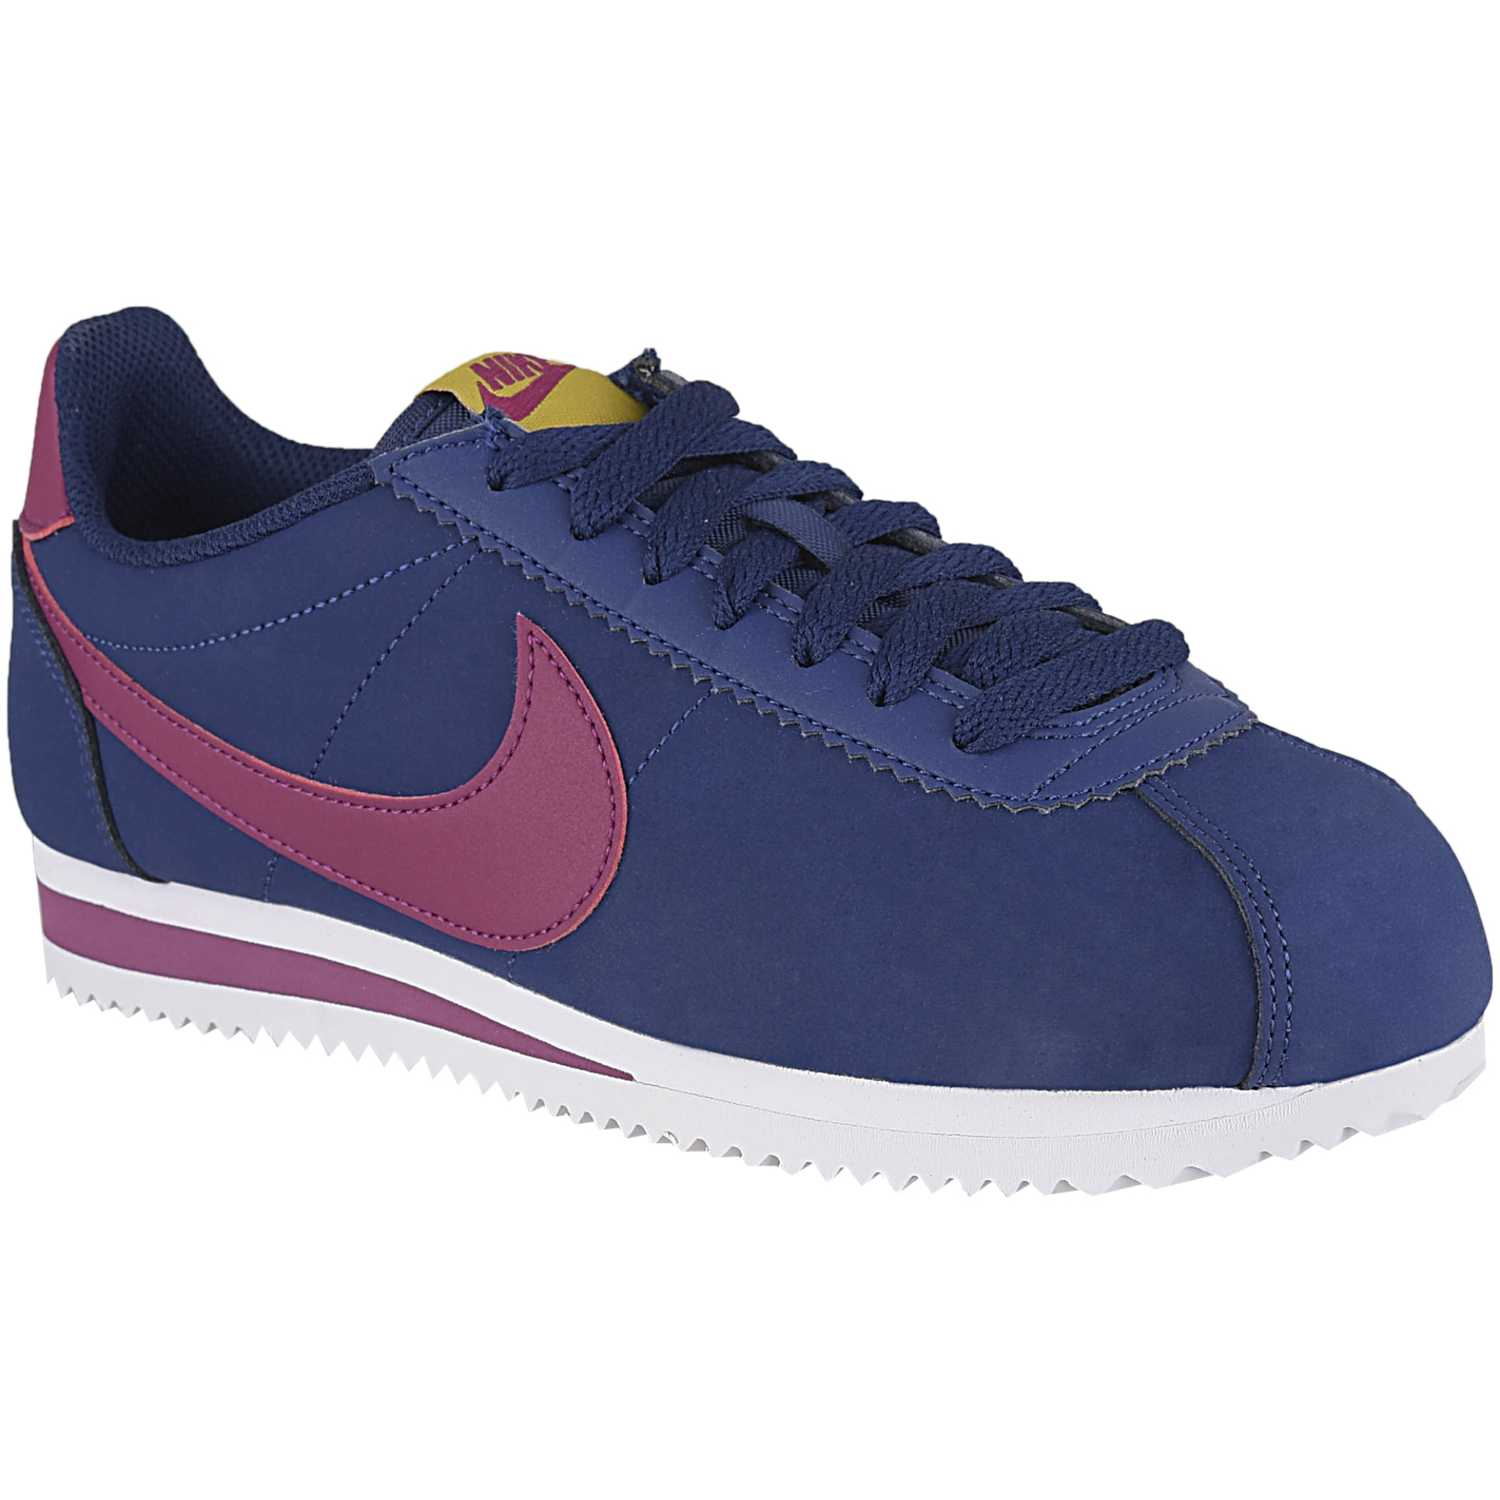 Casual de Mujer Nike Azul / rosado wmns classic cortez leather